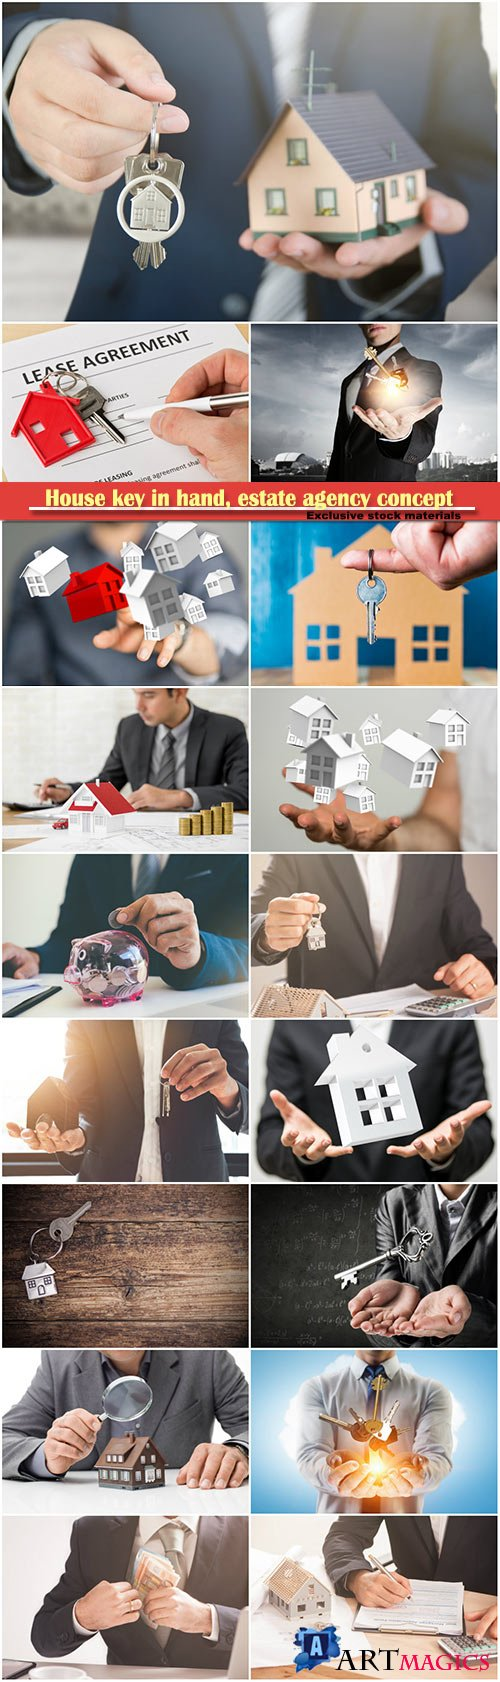 House key in hand, estate agency concept